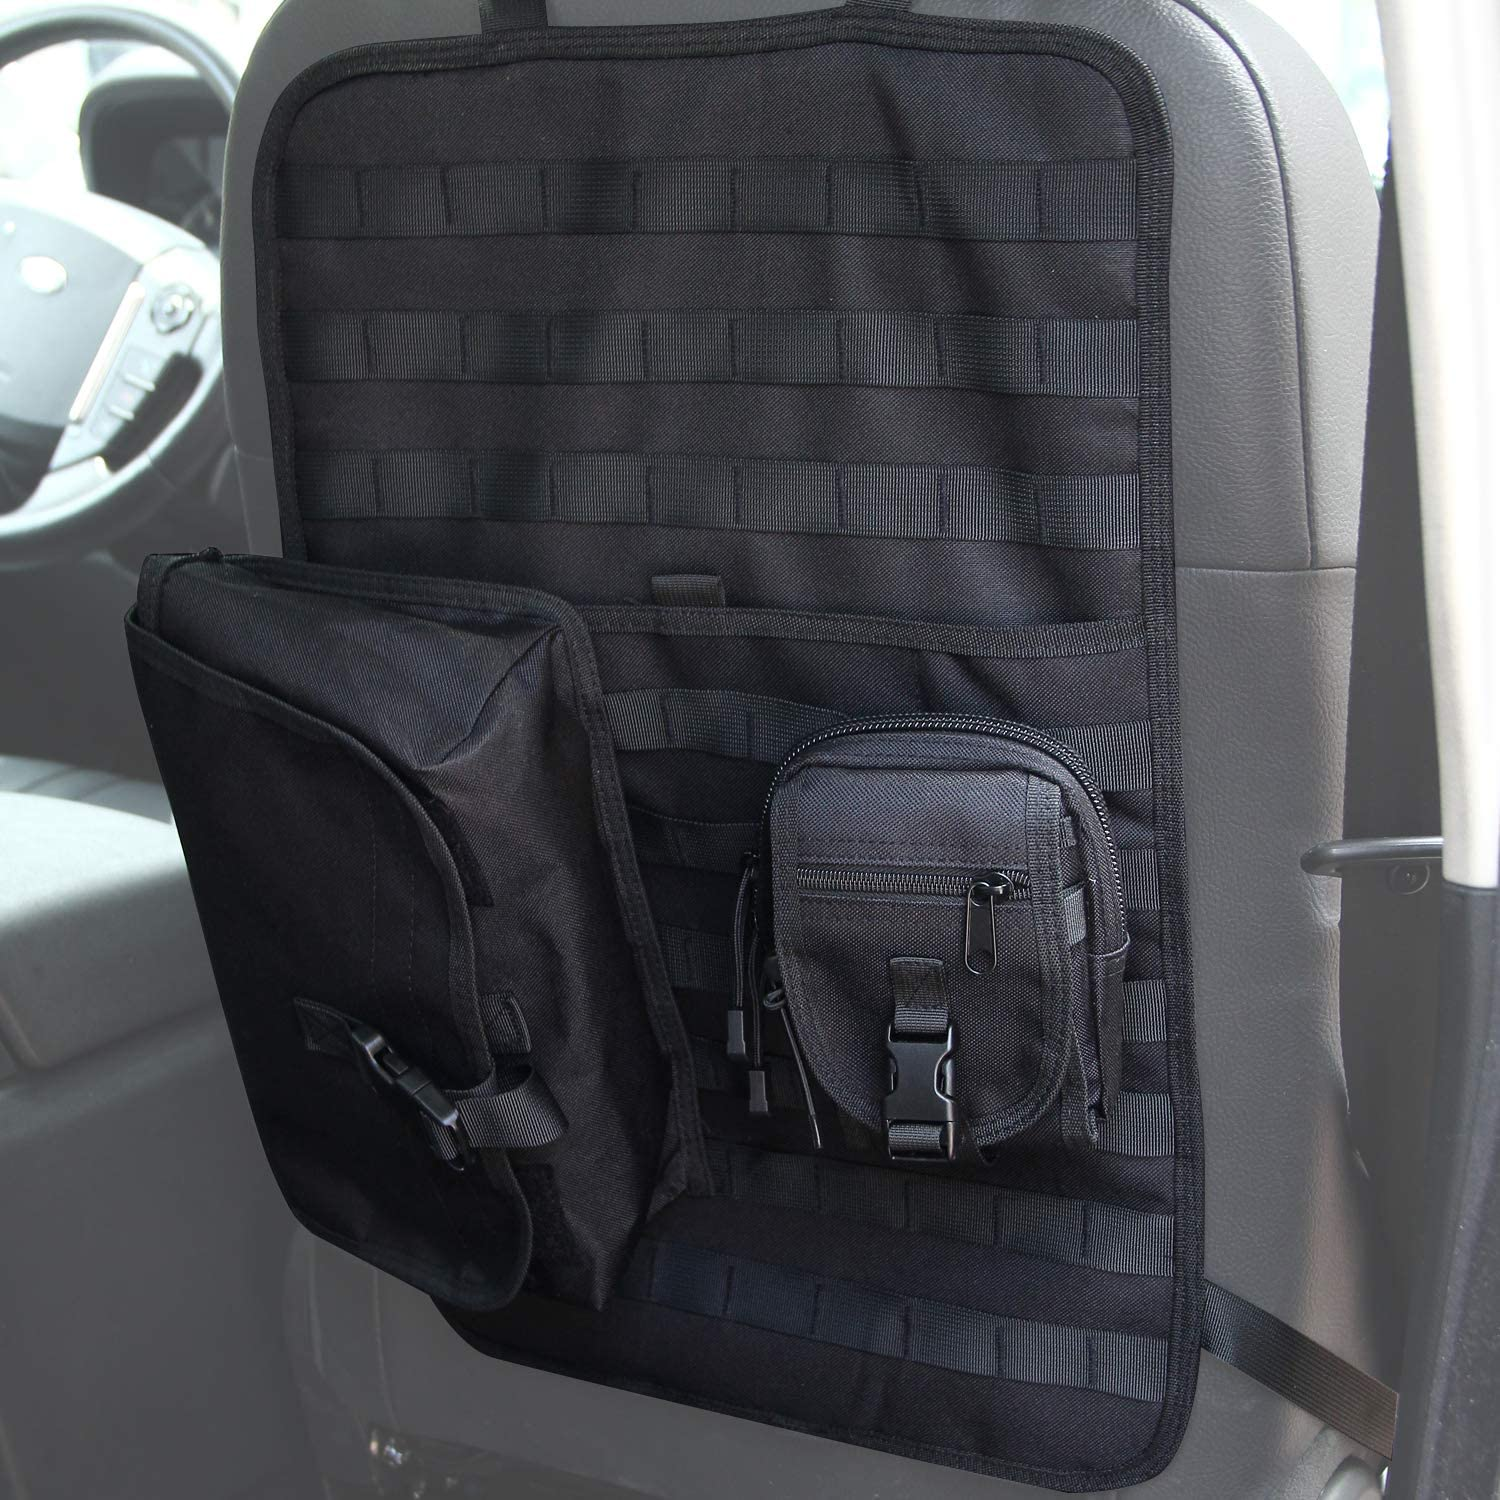 Black SUNPIE Universal Tactical MOLLE Seat Cover Organizer with Storage Bag Pockets Pouch for Car Truck Jeep